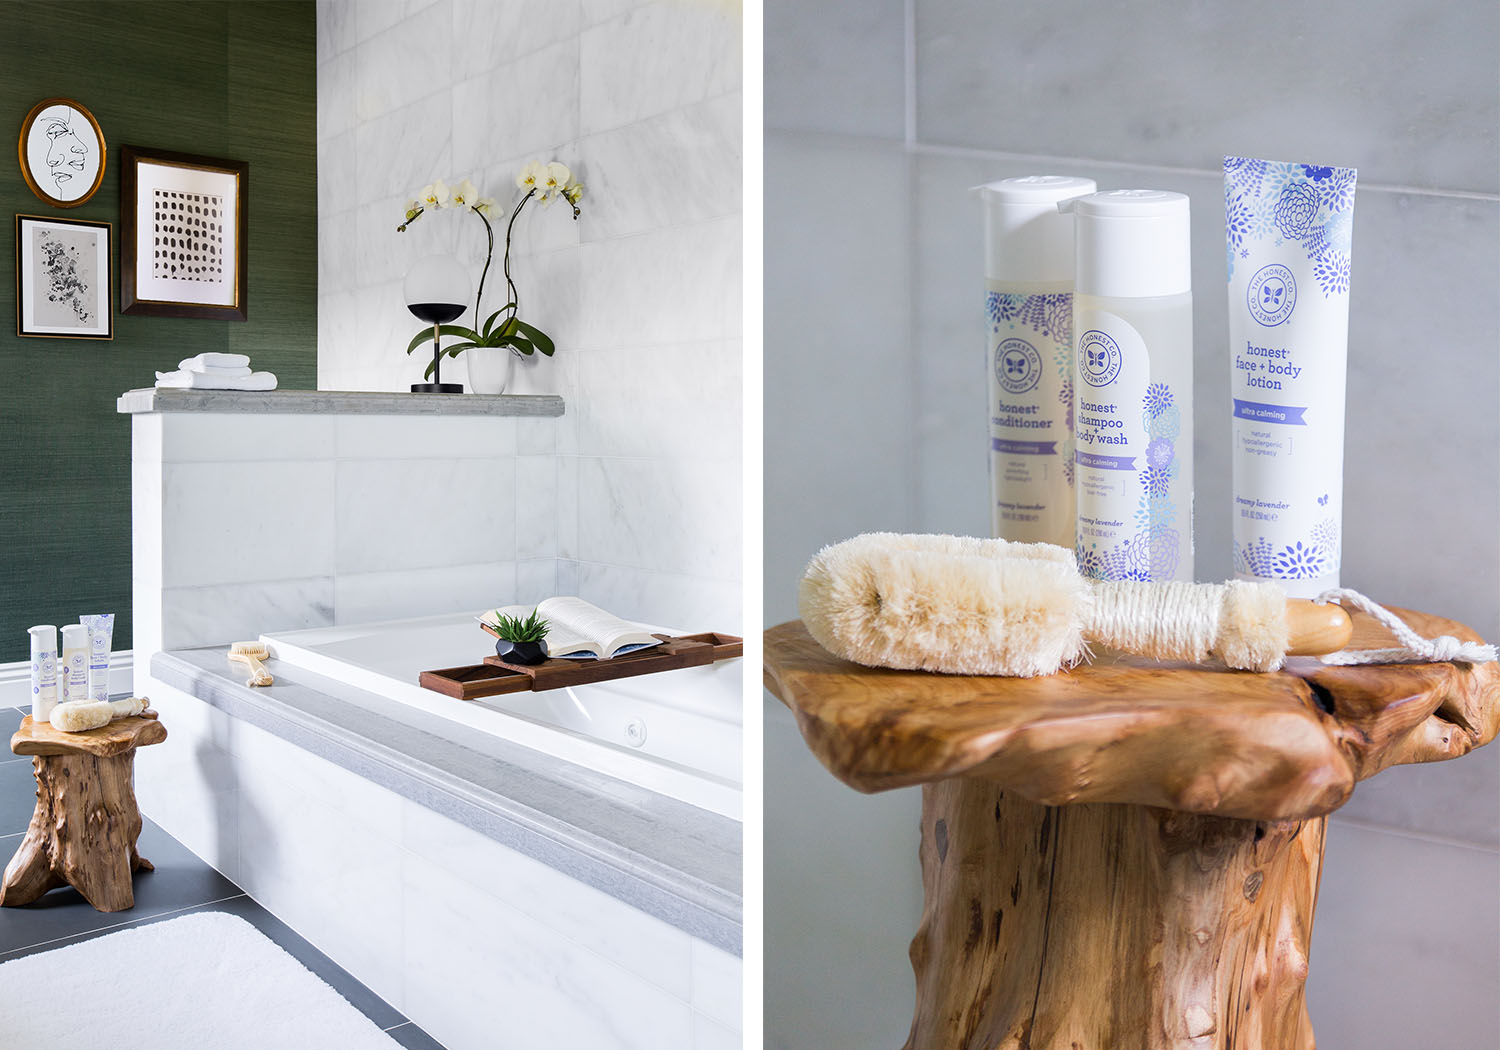 Marble walls breathe in elegance to this modern bathroom. A vintage, wooden stool and neutral artworks captured in a variety of frames add a hint of rustic charm.